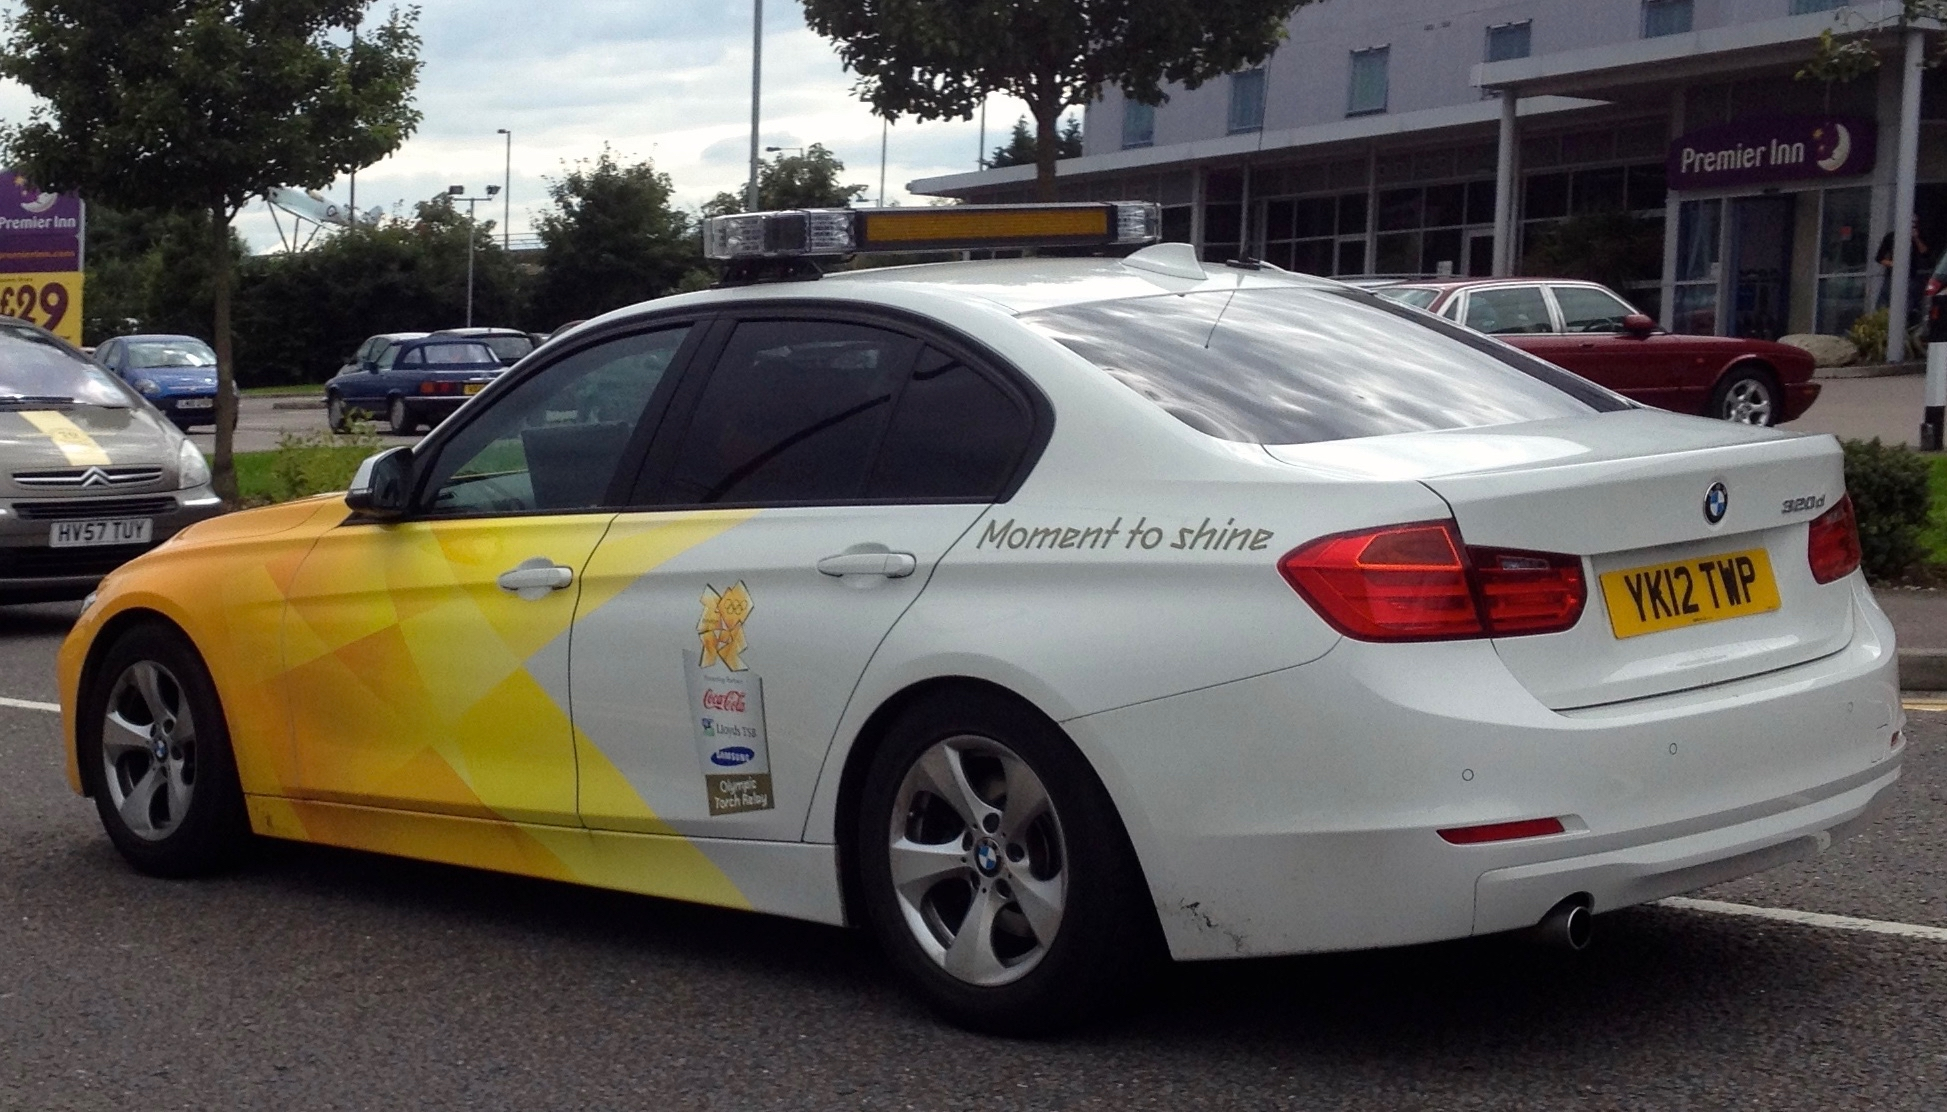 A BMW 3-series 320d painted in the orange, yellow and white Olympic branding